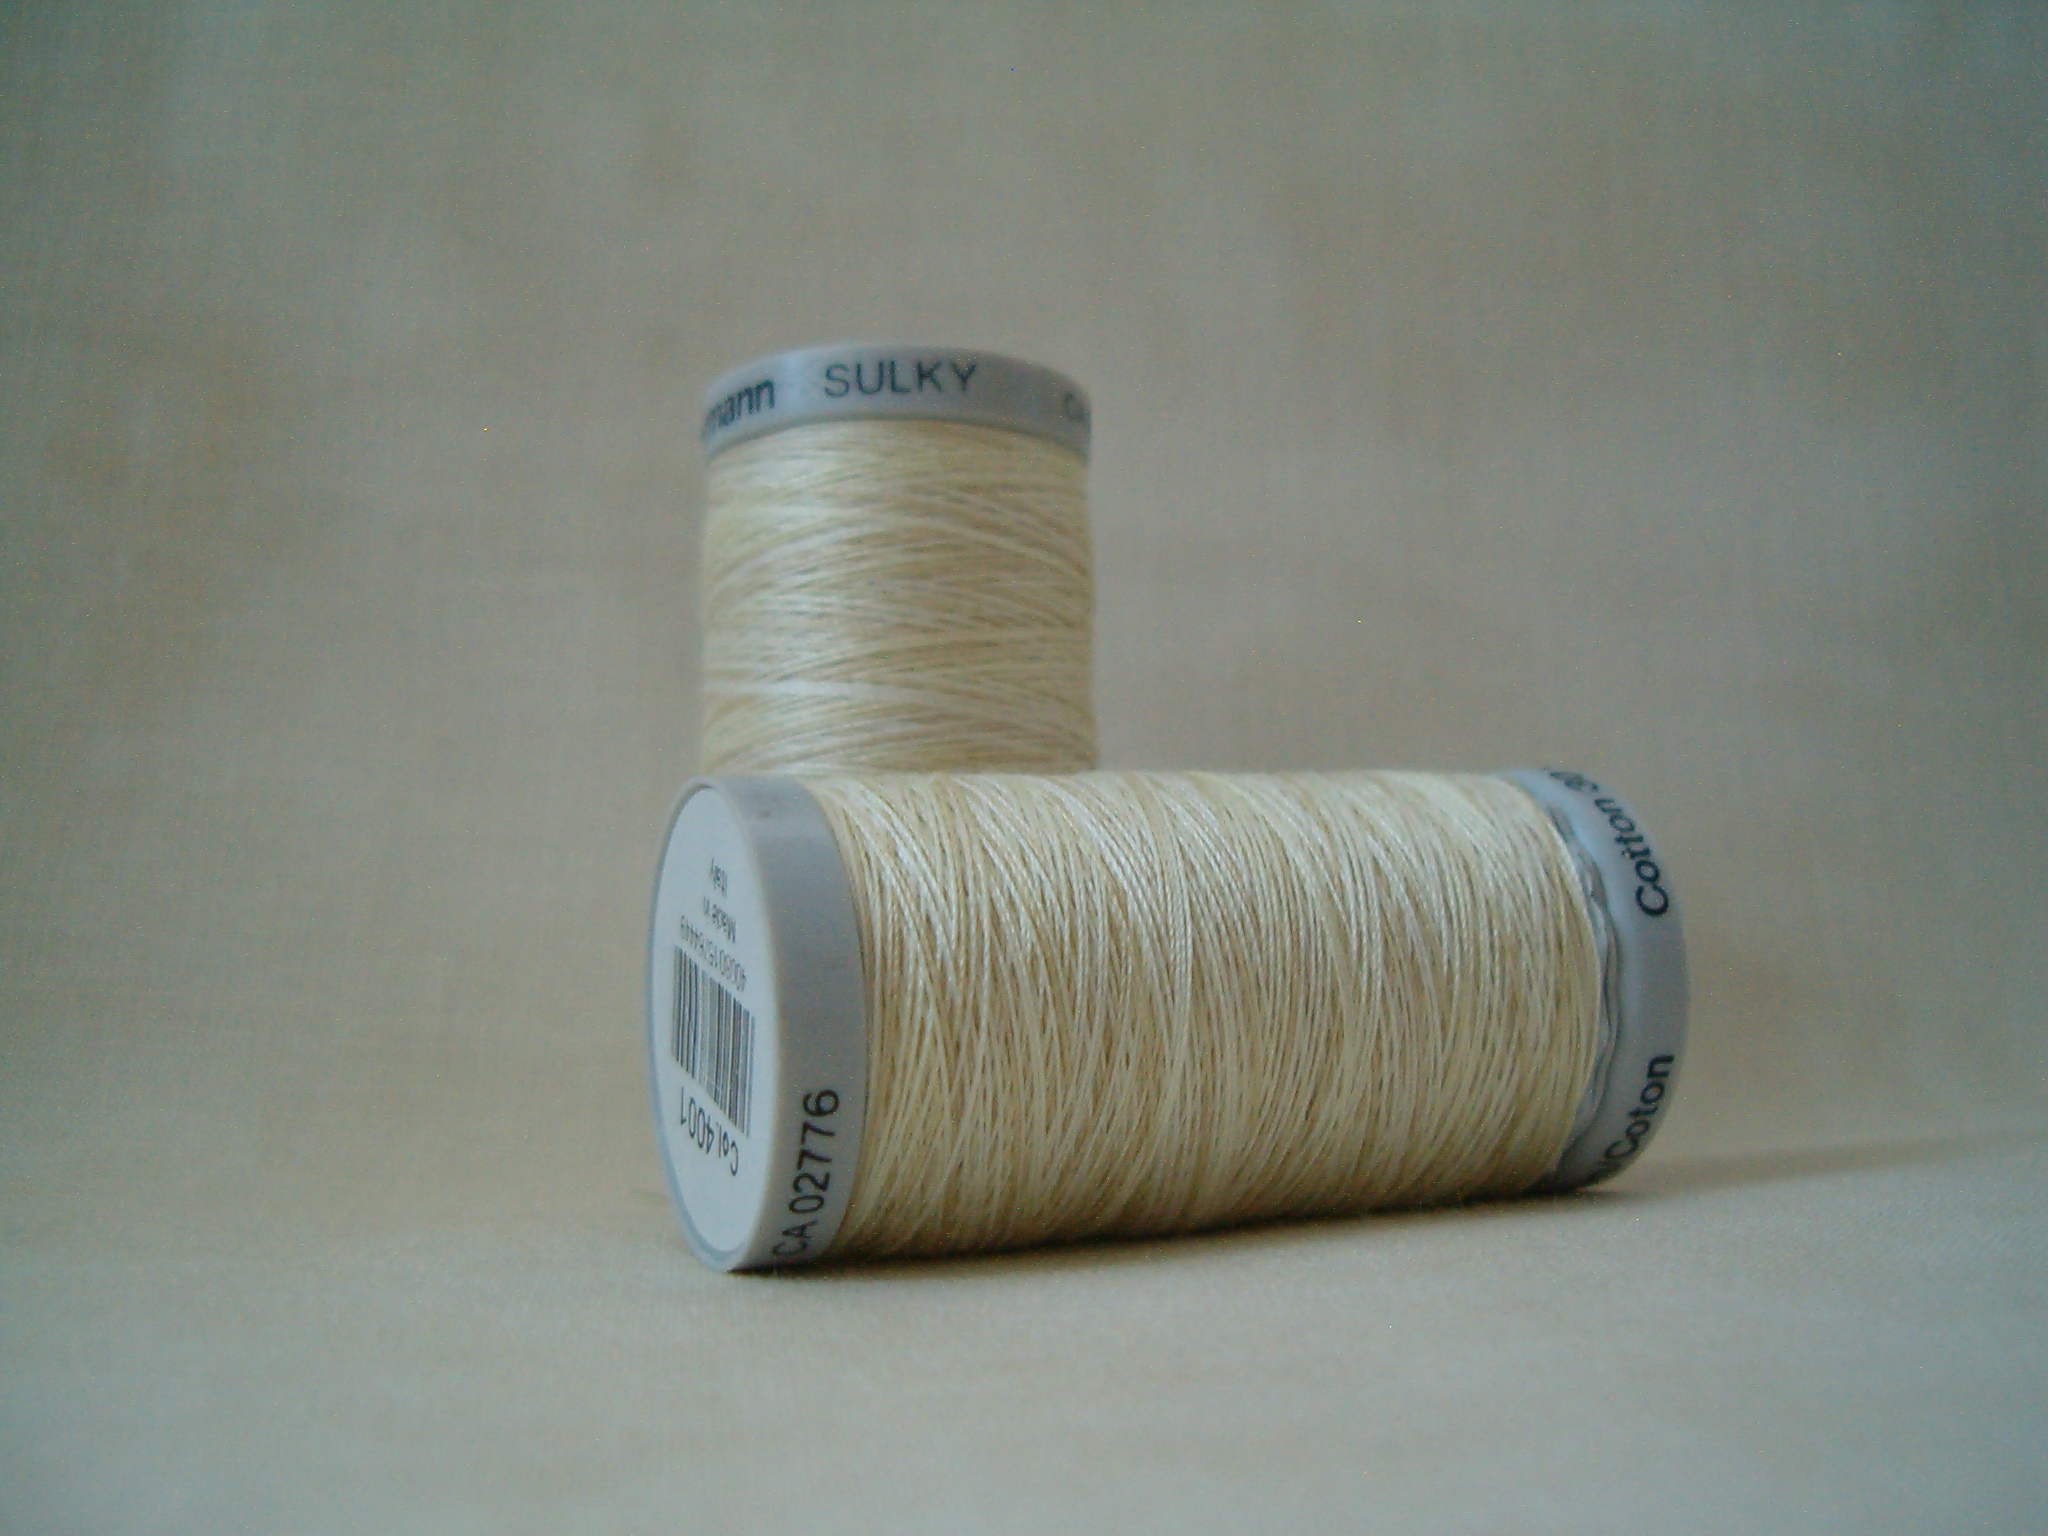 4001SULKY Cotton 300m